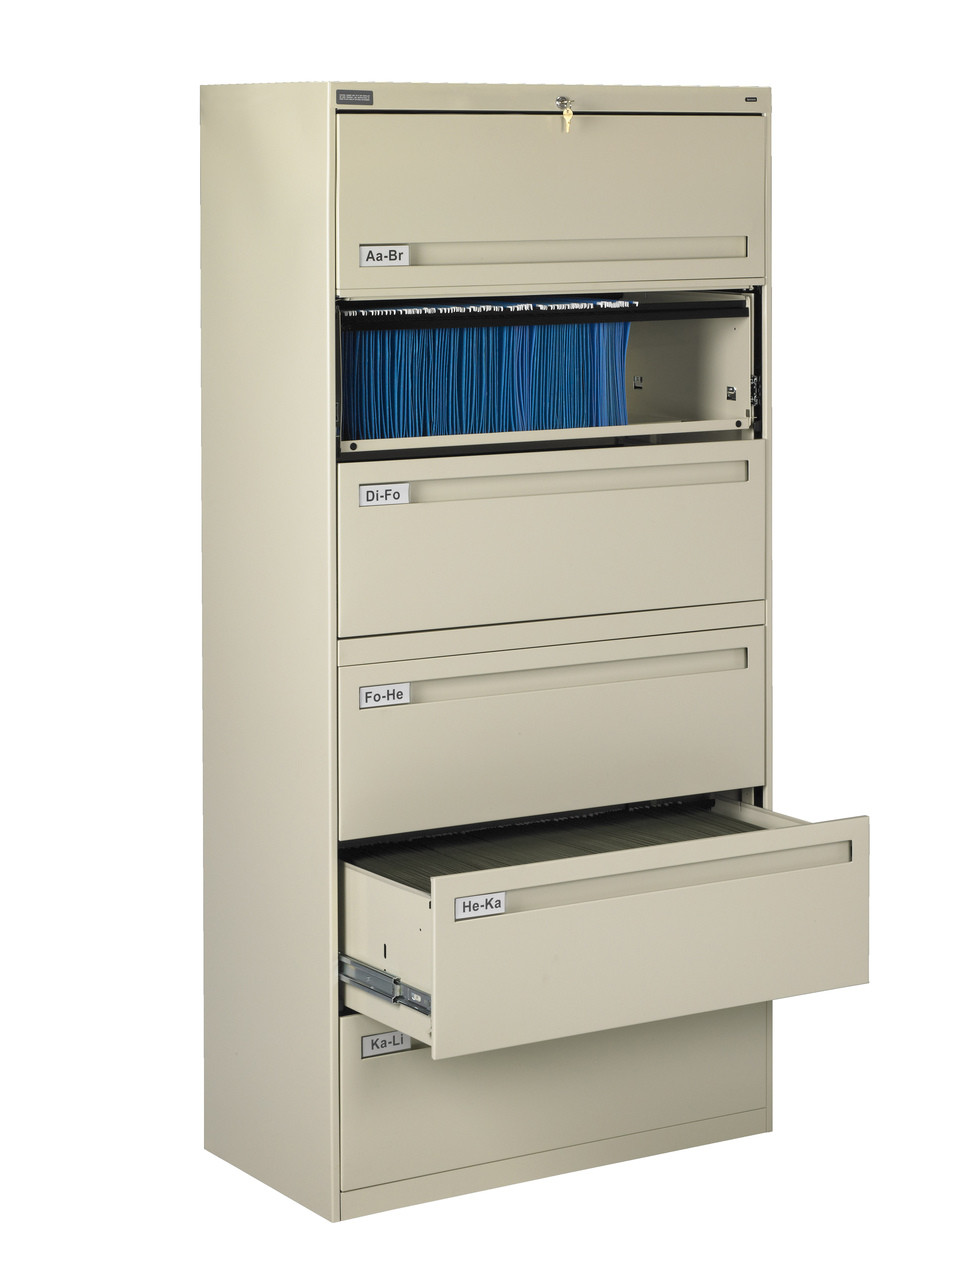 Tennsco Lpl4272l60 Combination 4 Fixed And 2 Retractable Drawer Lateral File 42x18x77